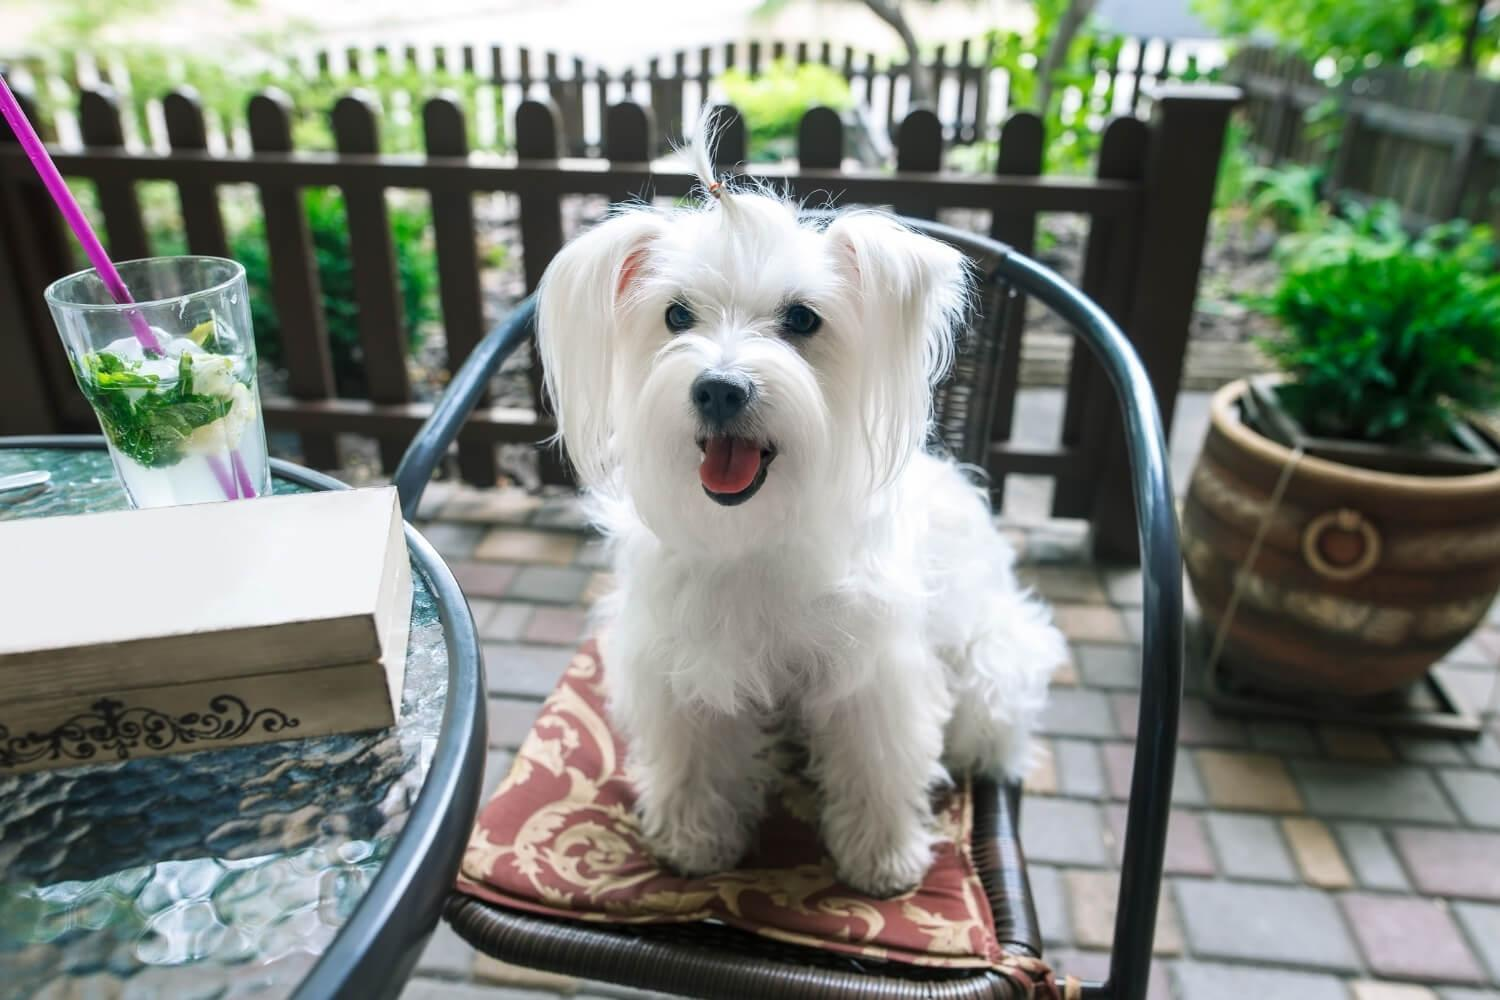 Dog at restaurant in DC sitting on chair